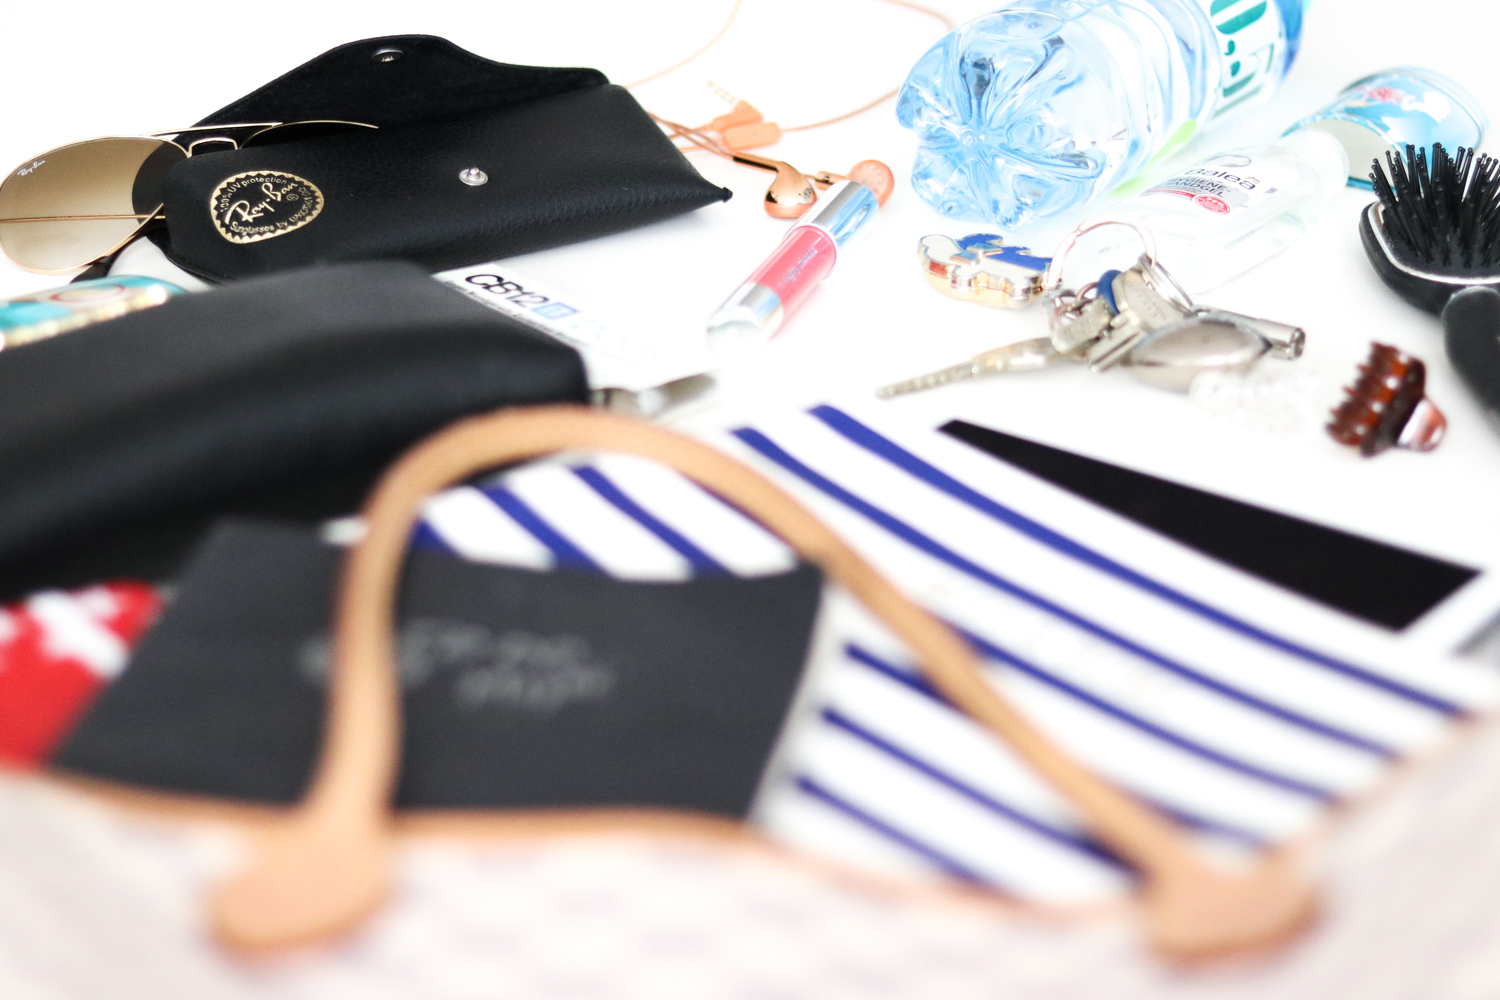 Bits and Bobs by Eva, Blog, Austrian Blog, Österreichische Blog, lovedailydose, your daily treat, fashion, beauty, food, interior, fitness, new, bitsandbobsbyeva.com, travel, spring, Mai, Frühling, What's in my Bag? Bag Update, Louis Vuitton, Tasche